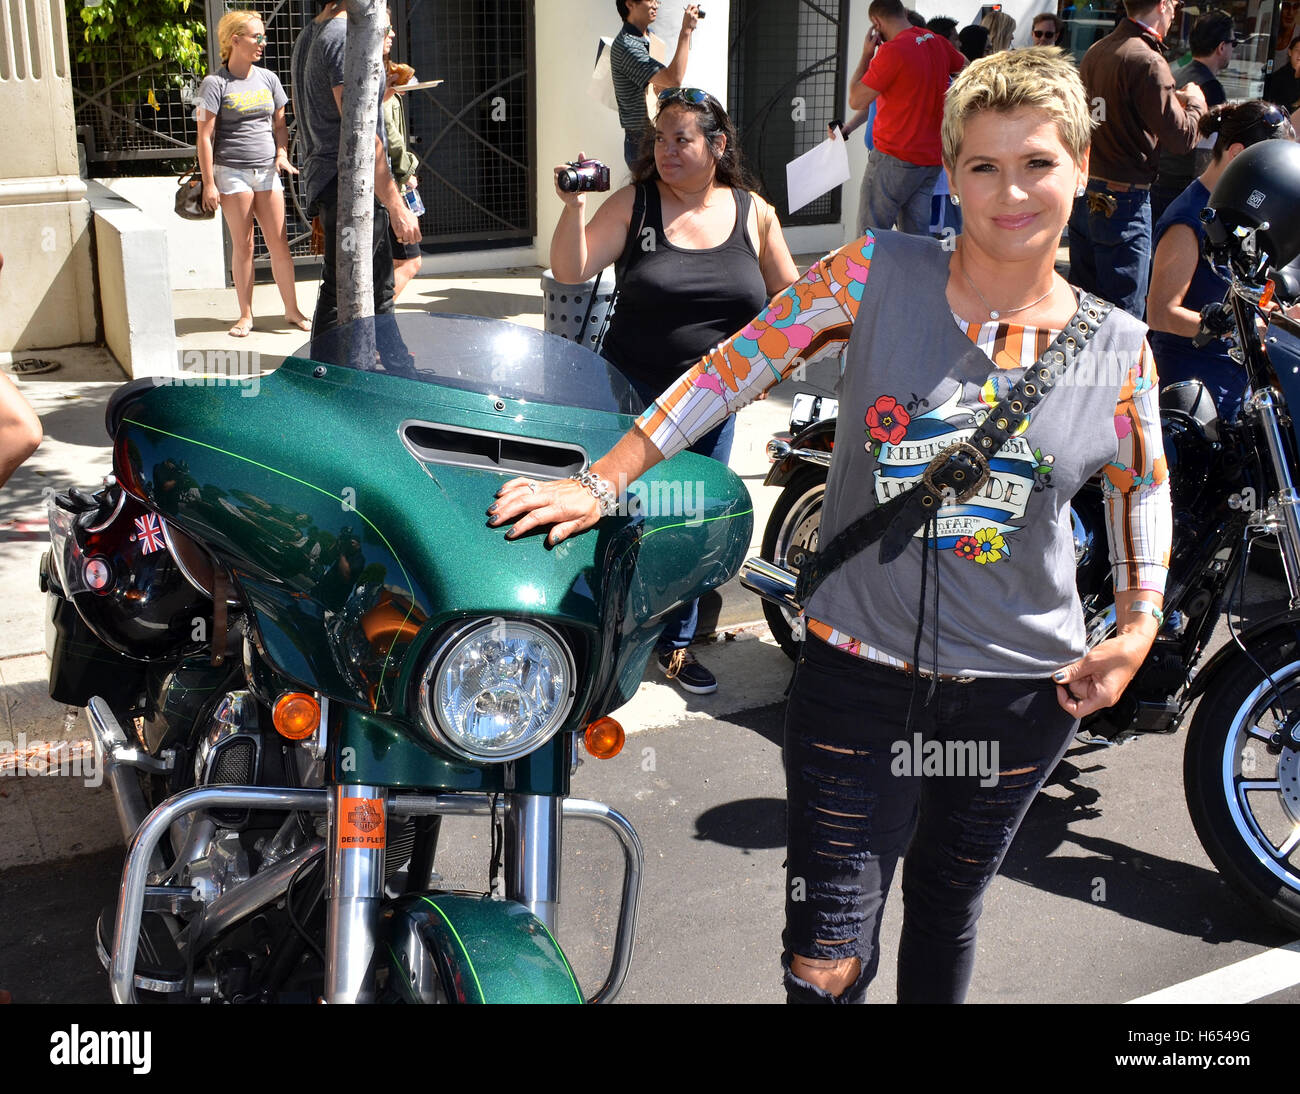 Kristy Swanson attended 6th Annual Kiehl's LifeRide For amfAR Celebration at Kiehl's Since 1851 - Stock Image